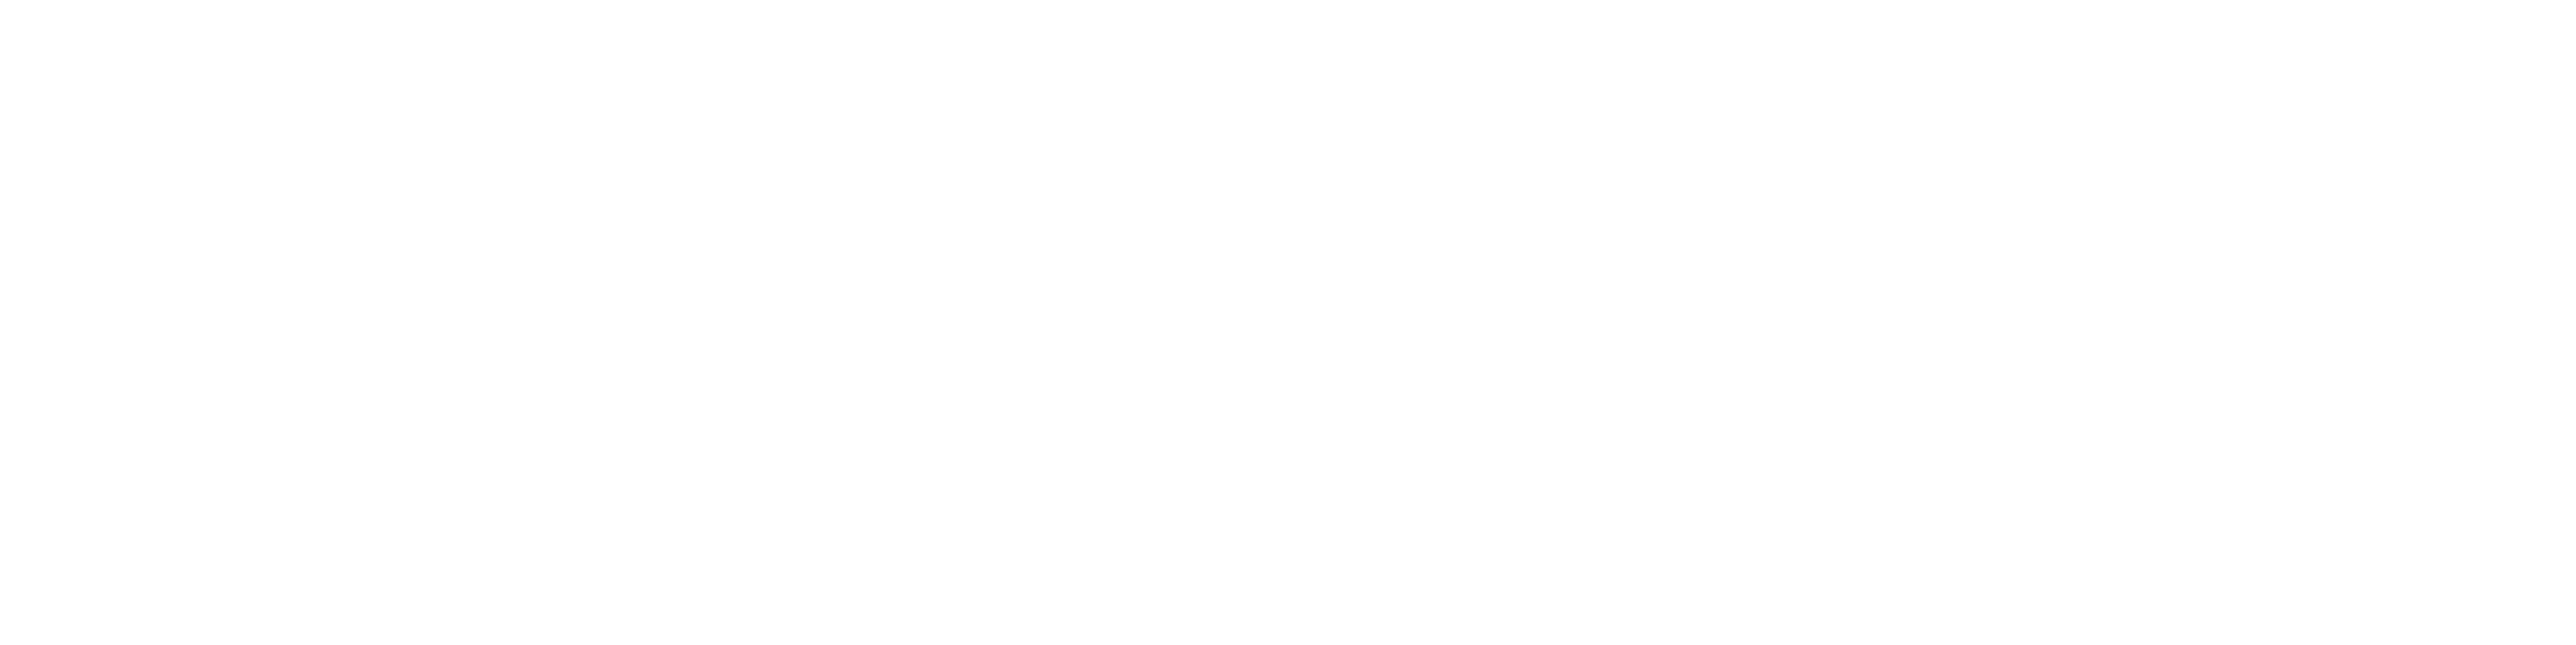 Lexpress deals logo